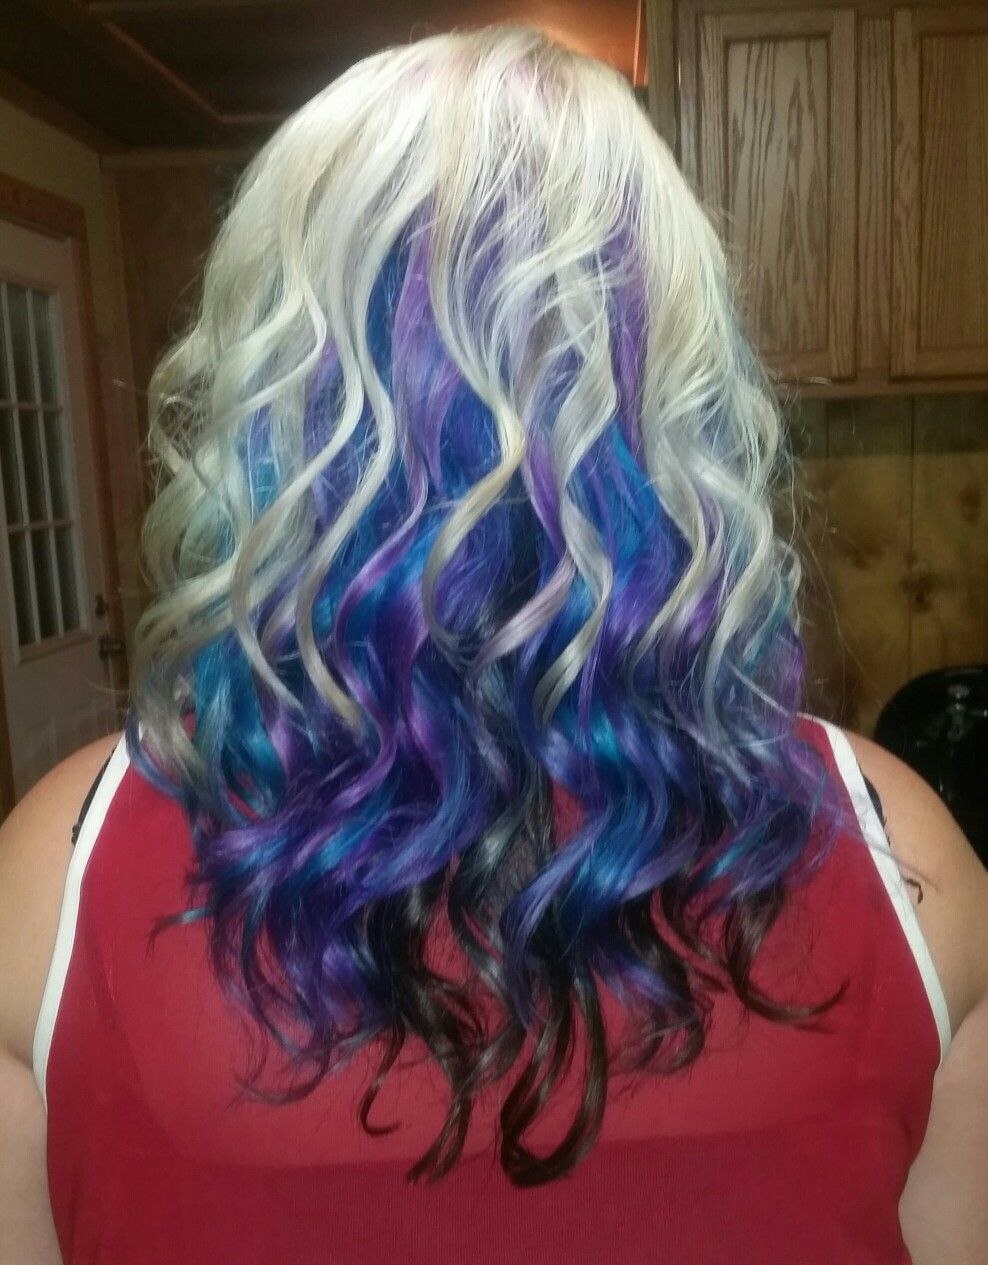 Blonde On Top Teal Blue And Purple In The Middle Peacock Colors